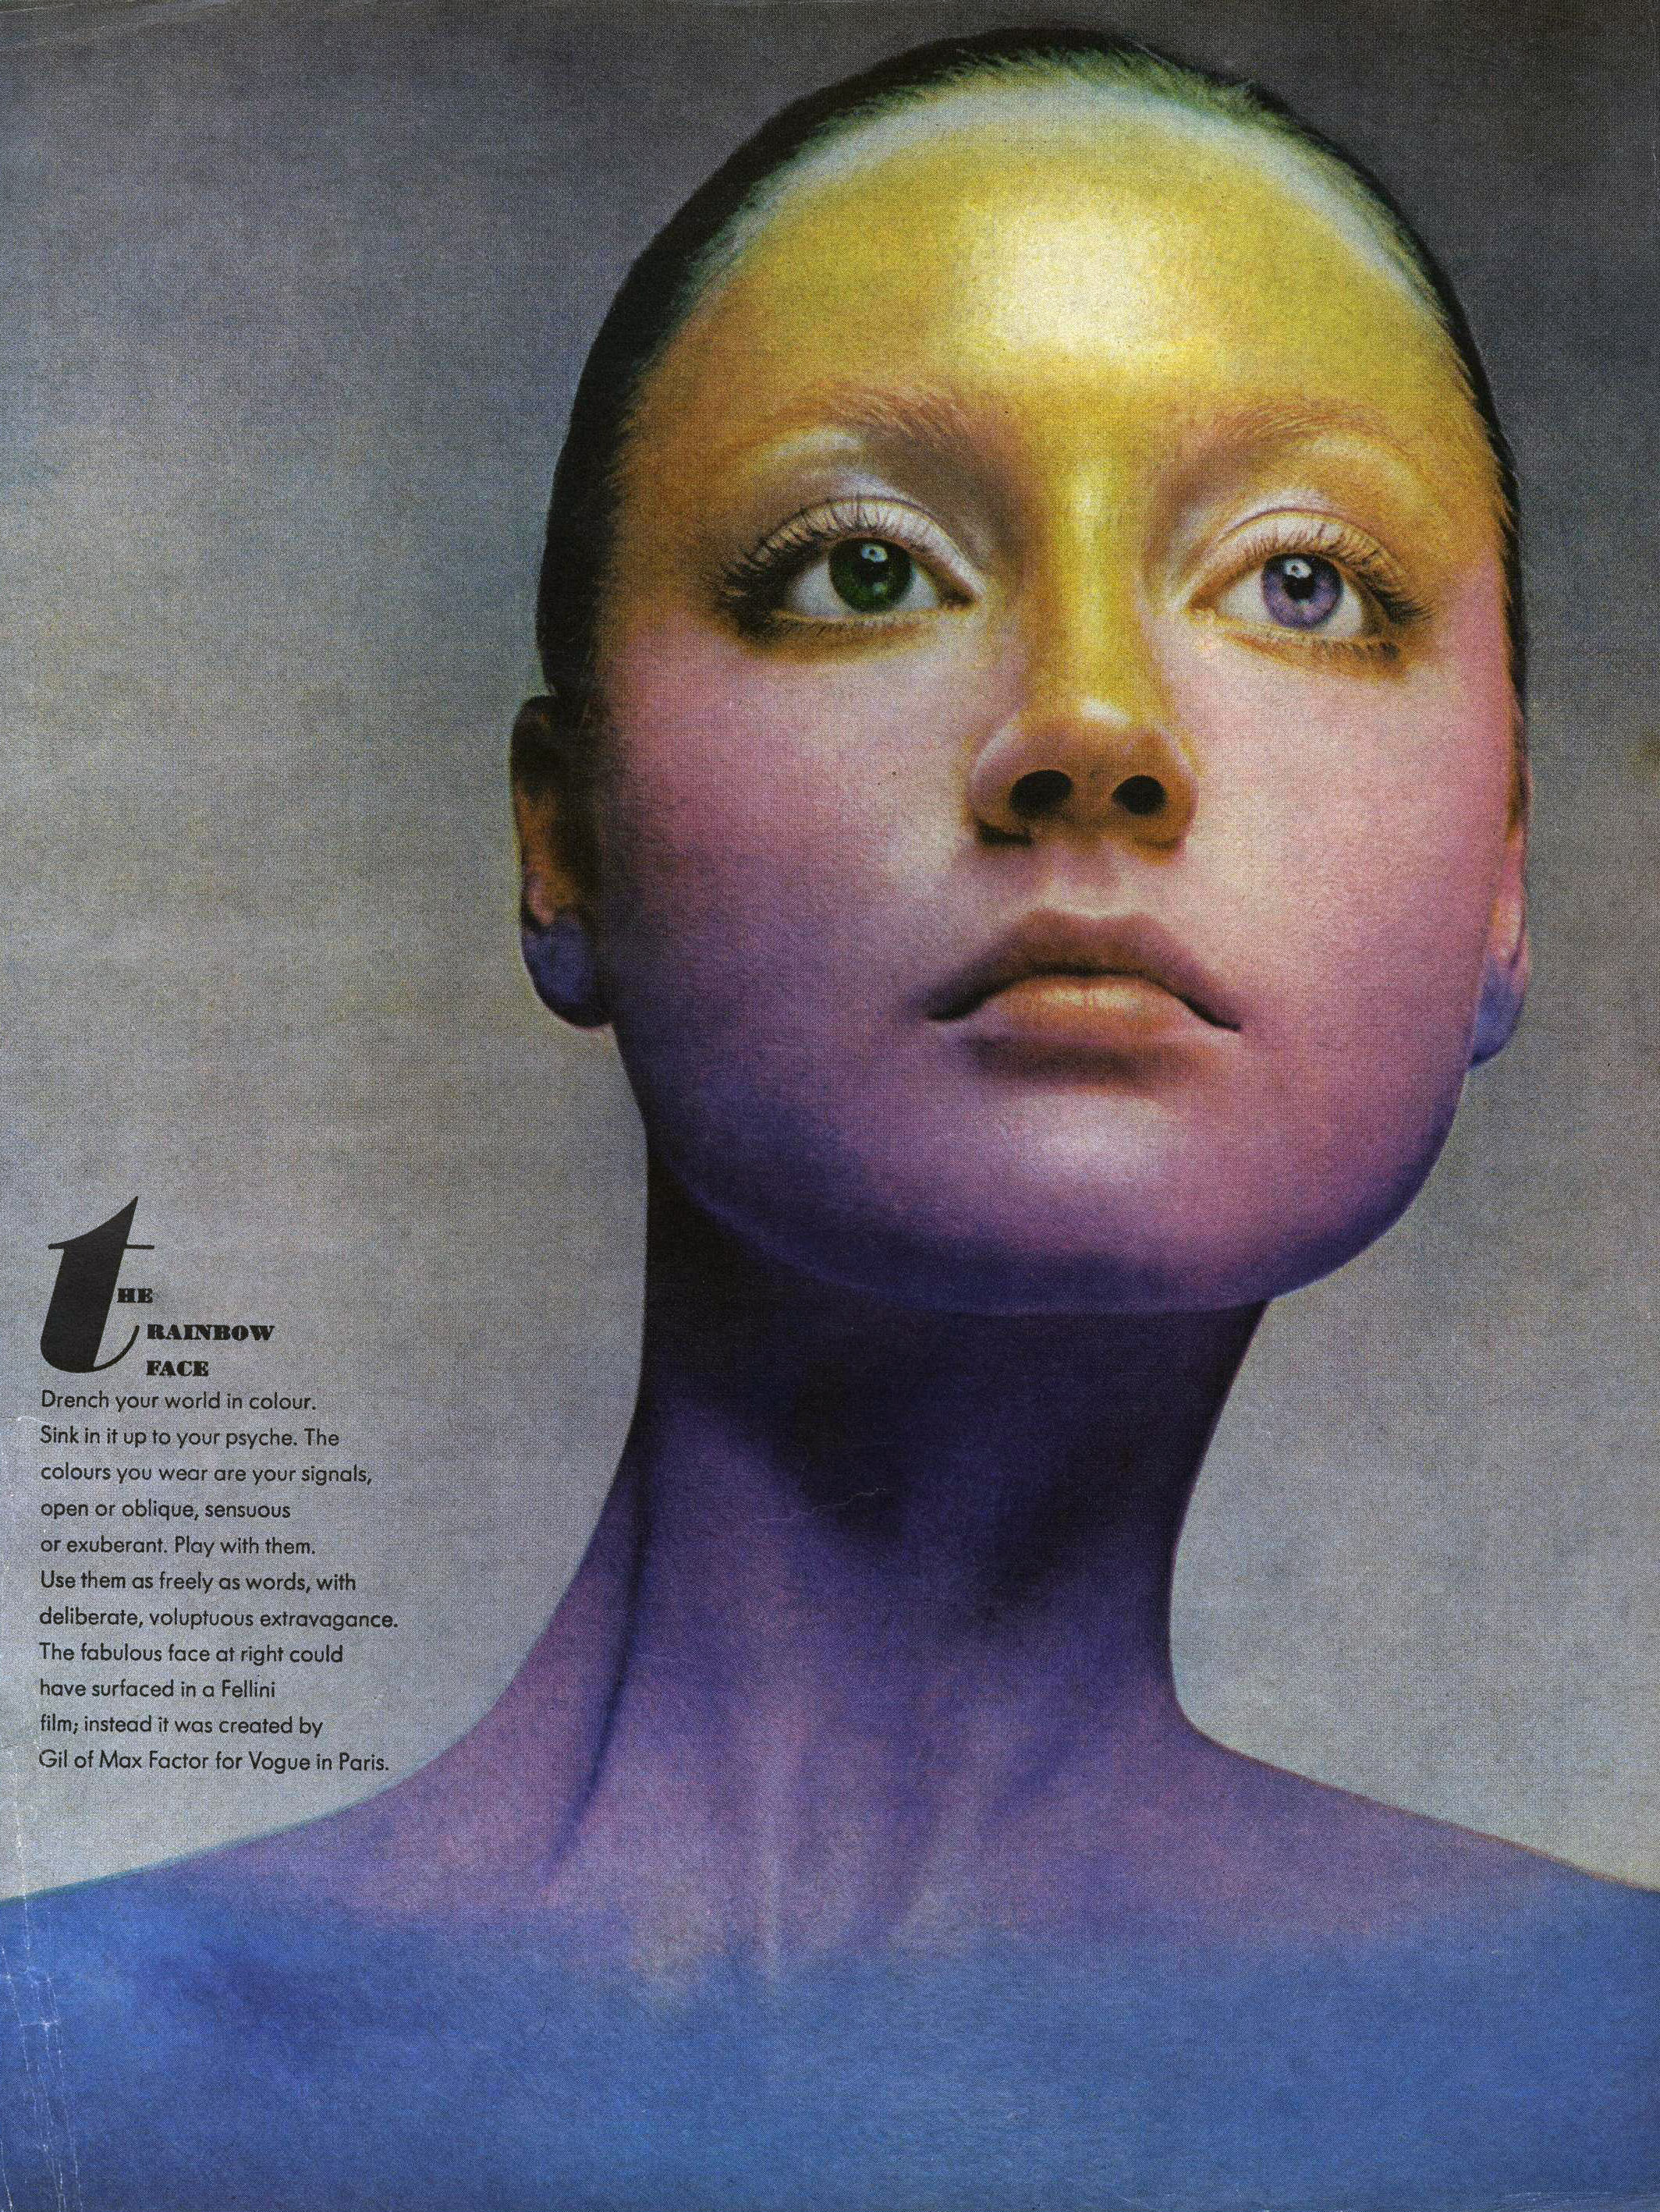 """""""The Rainbow Face"""" photographed by Richard Avedon for Vogue, November 1970."""